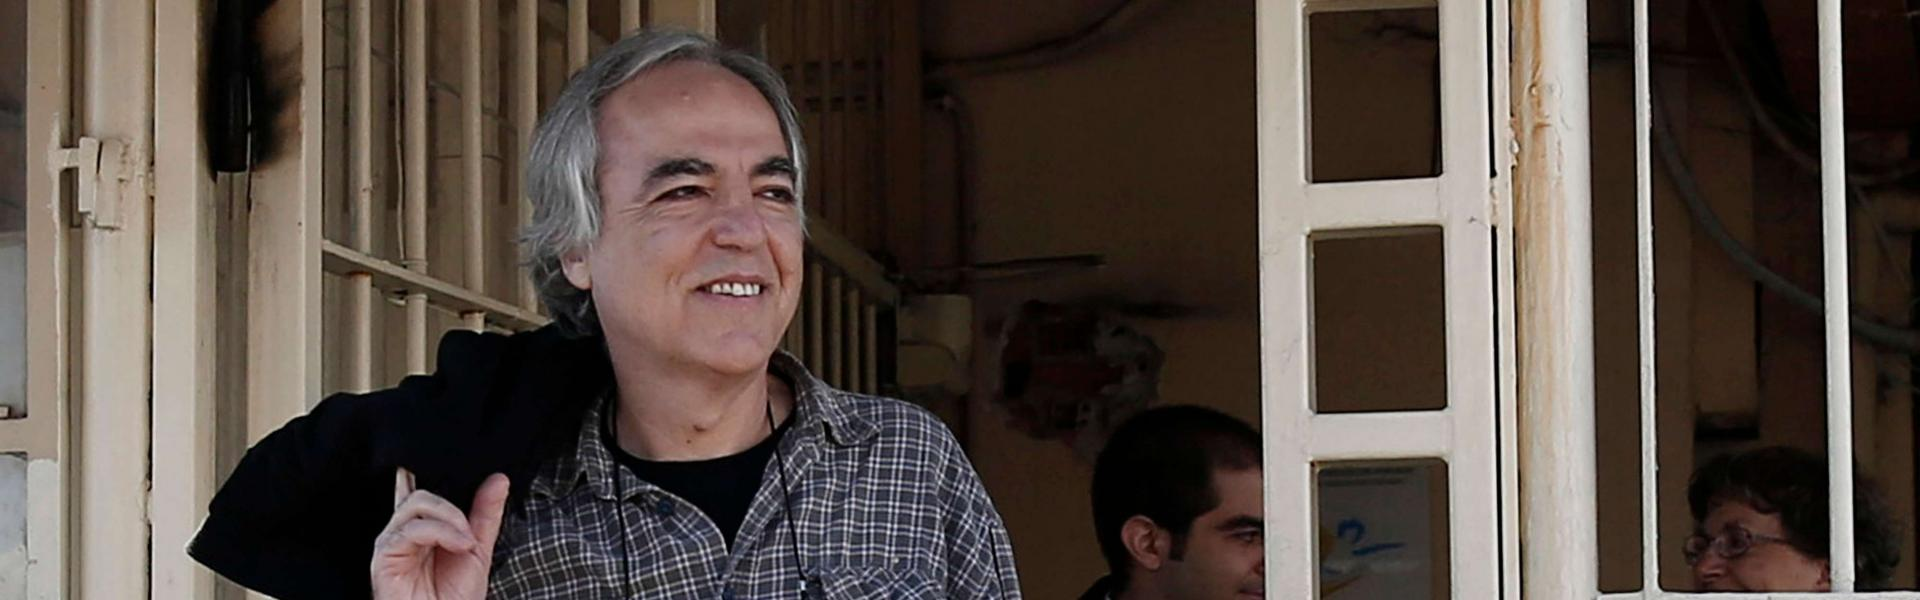 Convicted Greek terroristKoufodinastransferred to agricultural prison inVolos, Thessaly